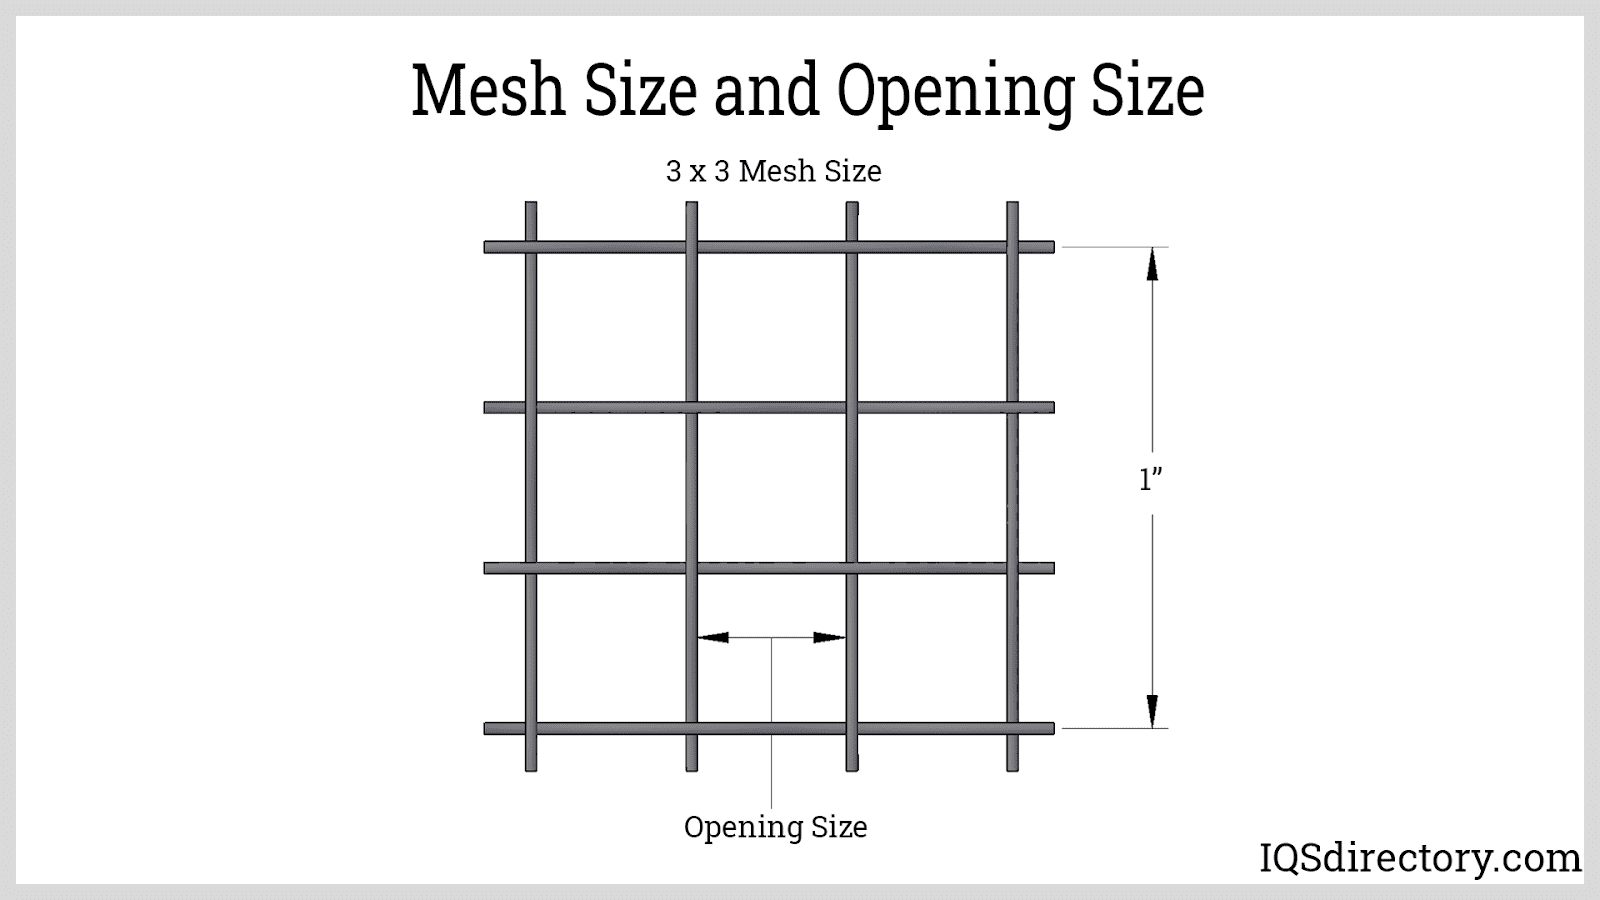 Mesh Size and Opening Size